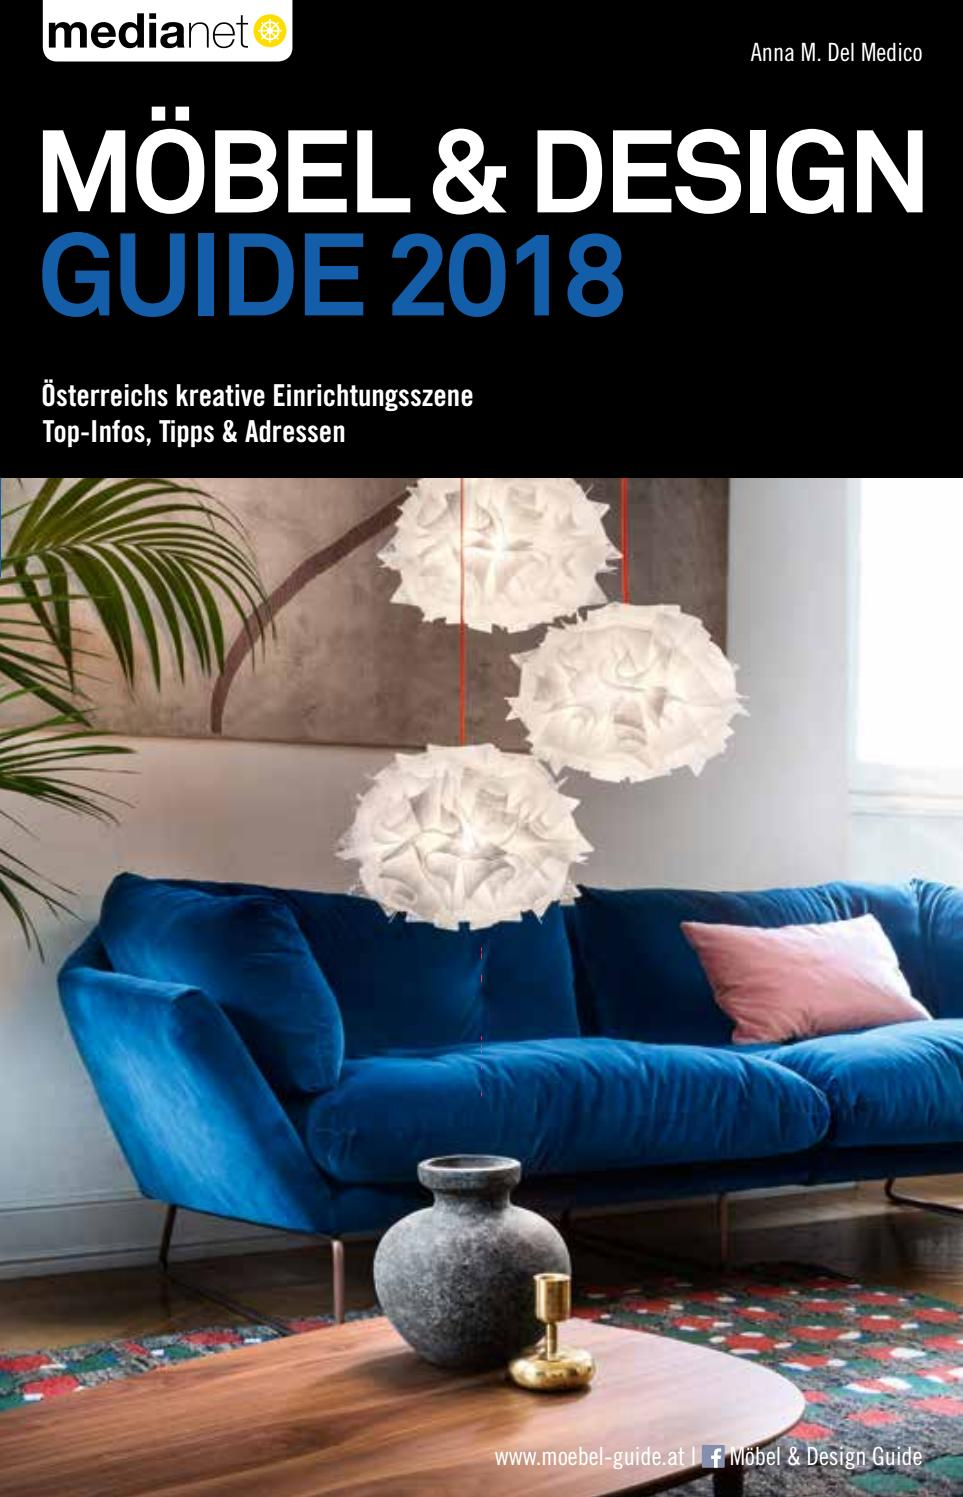 Ligne Roset Multy Bezug Nähen Möbel Design Guide 2018 By Medianet Issuu